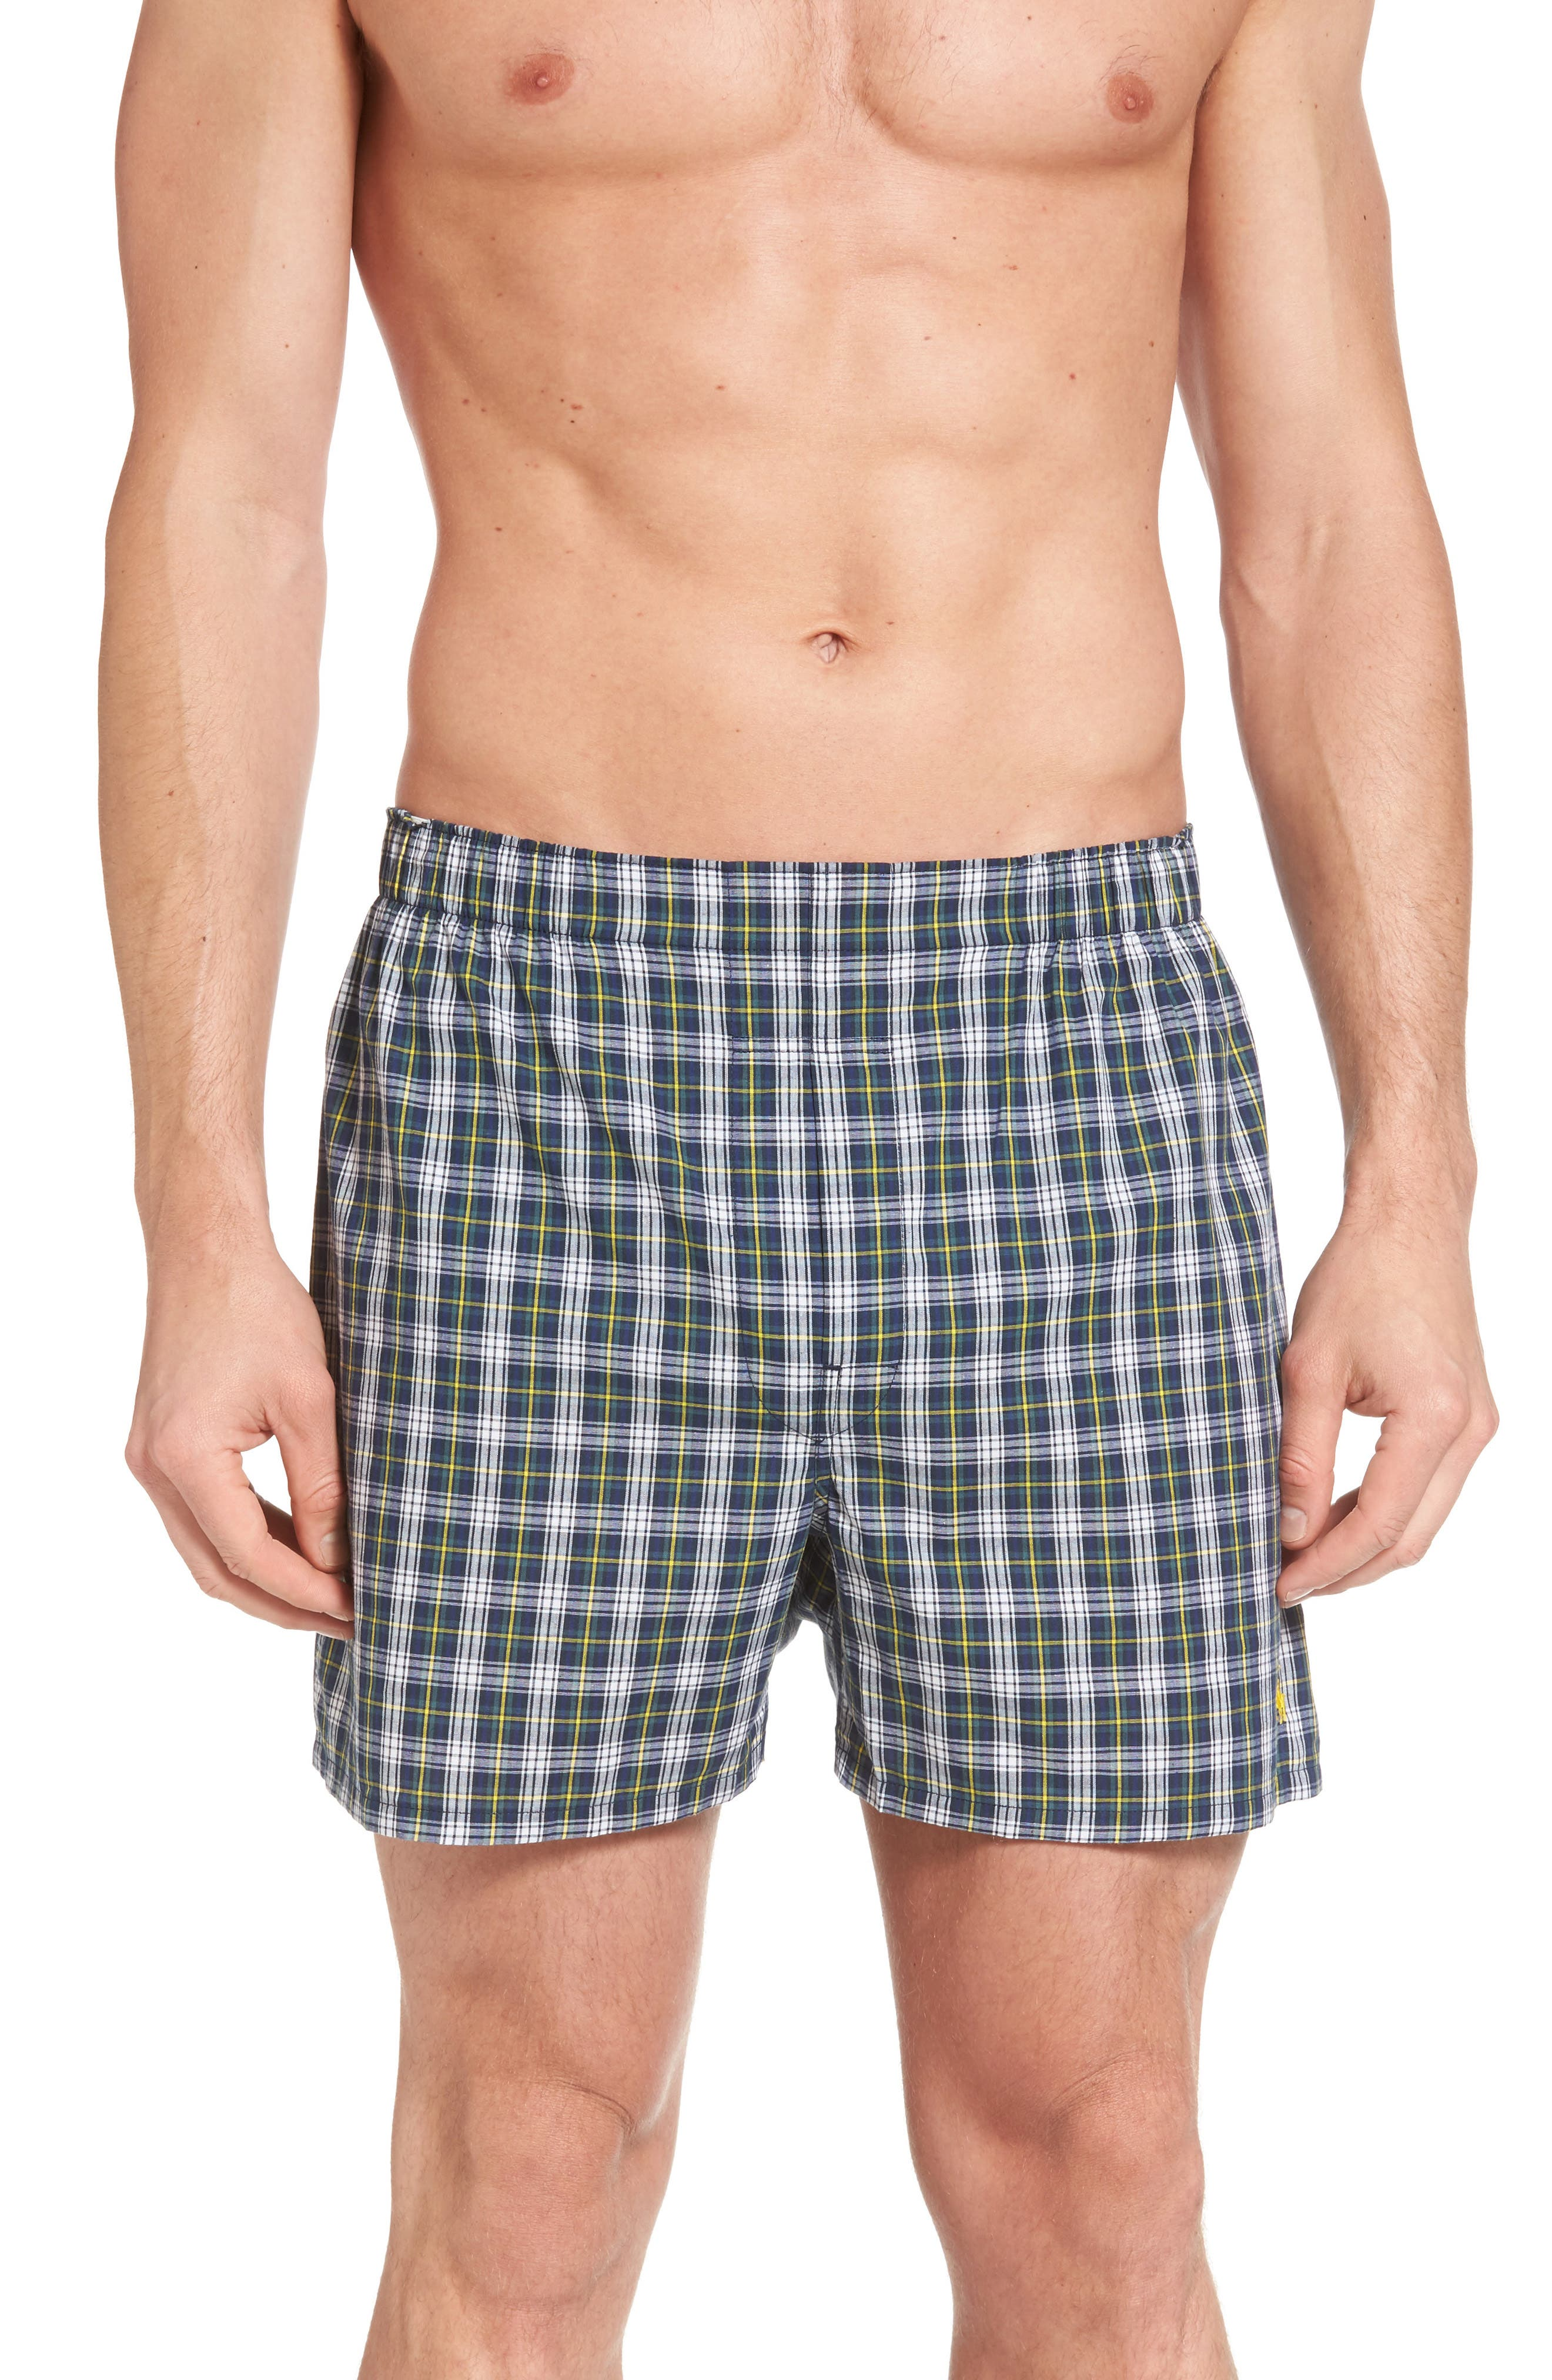 Assorted 3-Pack Woven Cotton Boxers,                             Alternate thumbnail 2, color,                             Blue/ Green Plaid/ Navy Plaid